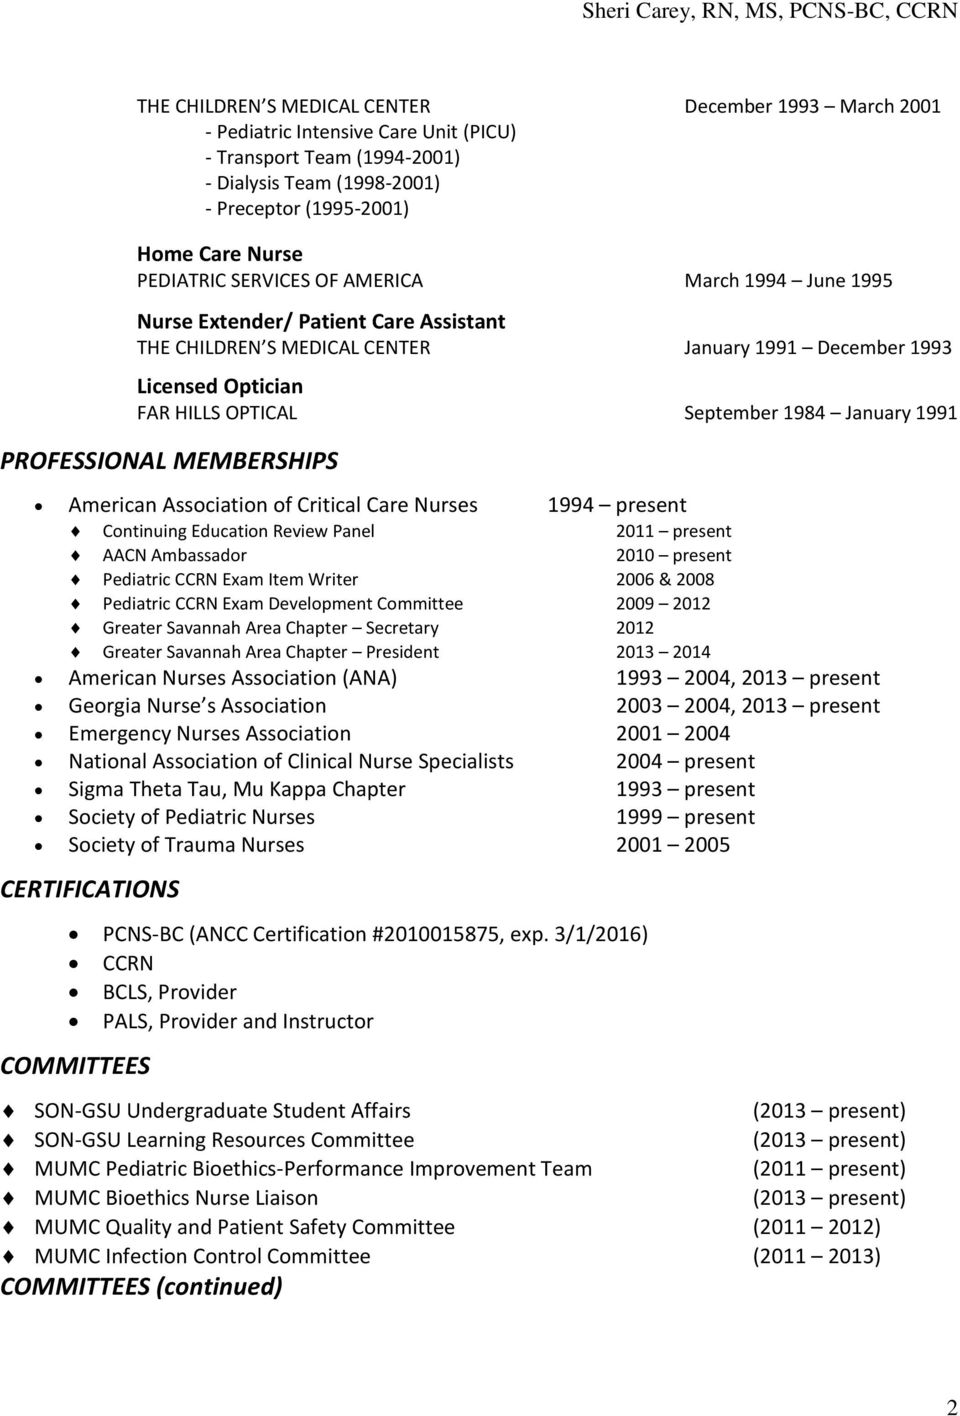 January 1991 PROFESSIONAL MEMBERSHIPS American Association of Critical Care Nurses 1994 present Continuing Education Review Panel 2011 present AACN Ambassador 2010 present Pediatric CCRN Exam Item